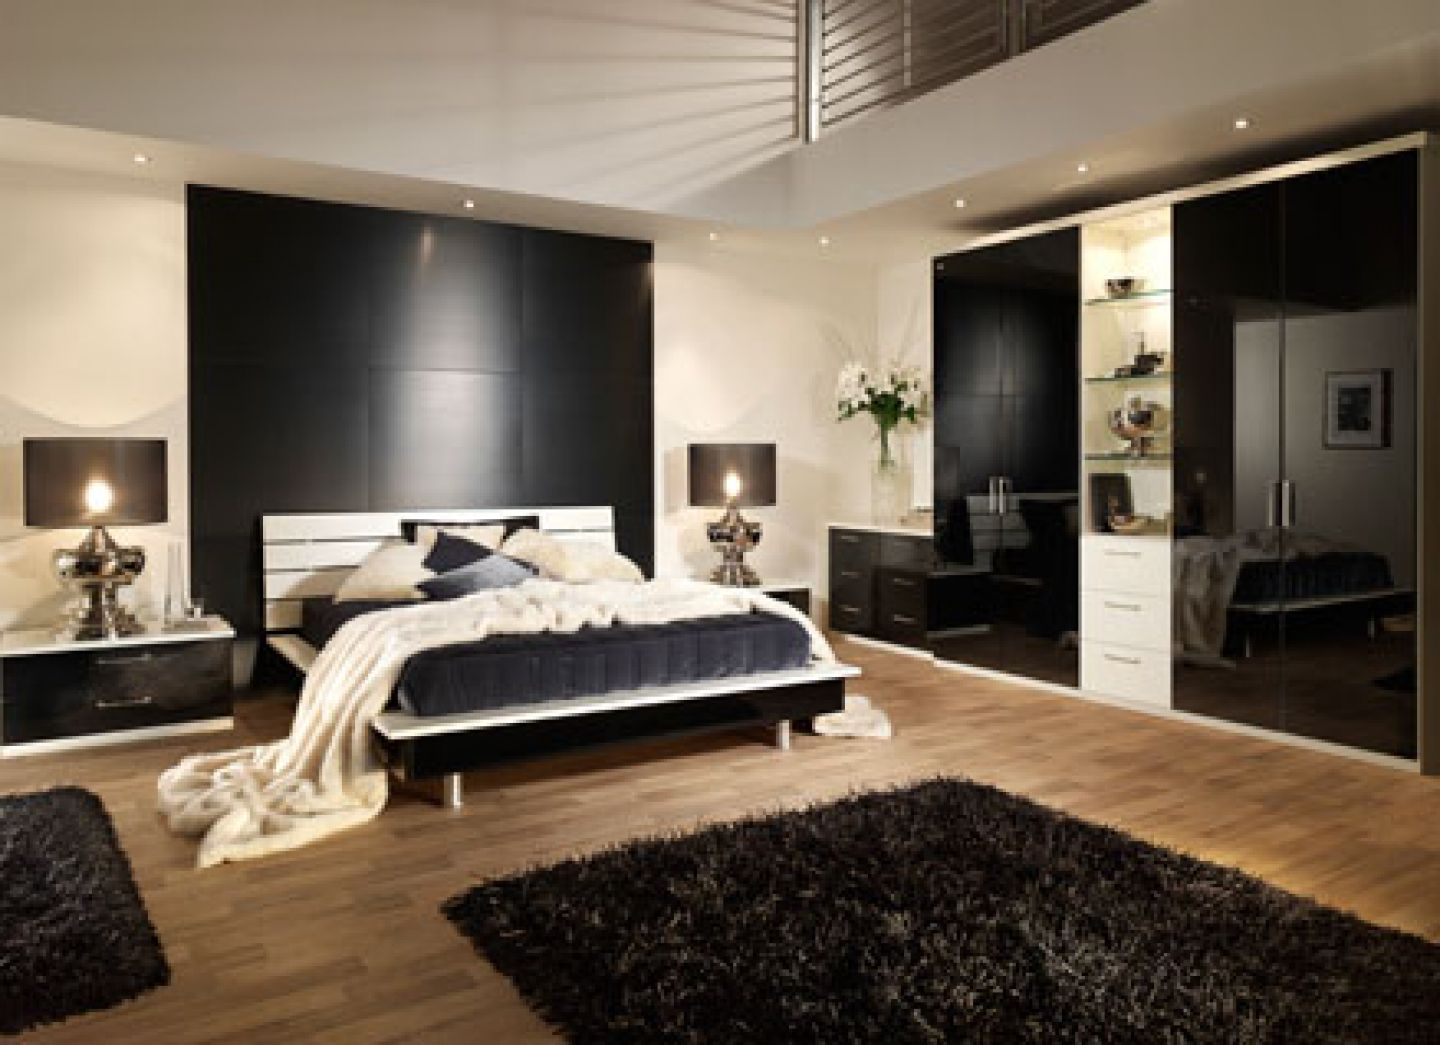 Bedroom Design : Modern Bedroom Inspiration Home Improvement Blog Design  Ideas ~ Glubdubs. Schlafzimmer ...